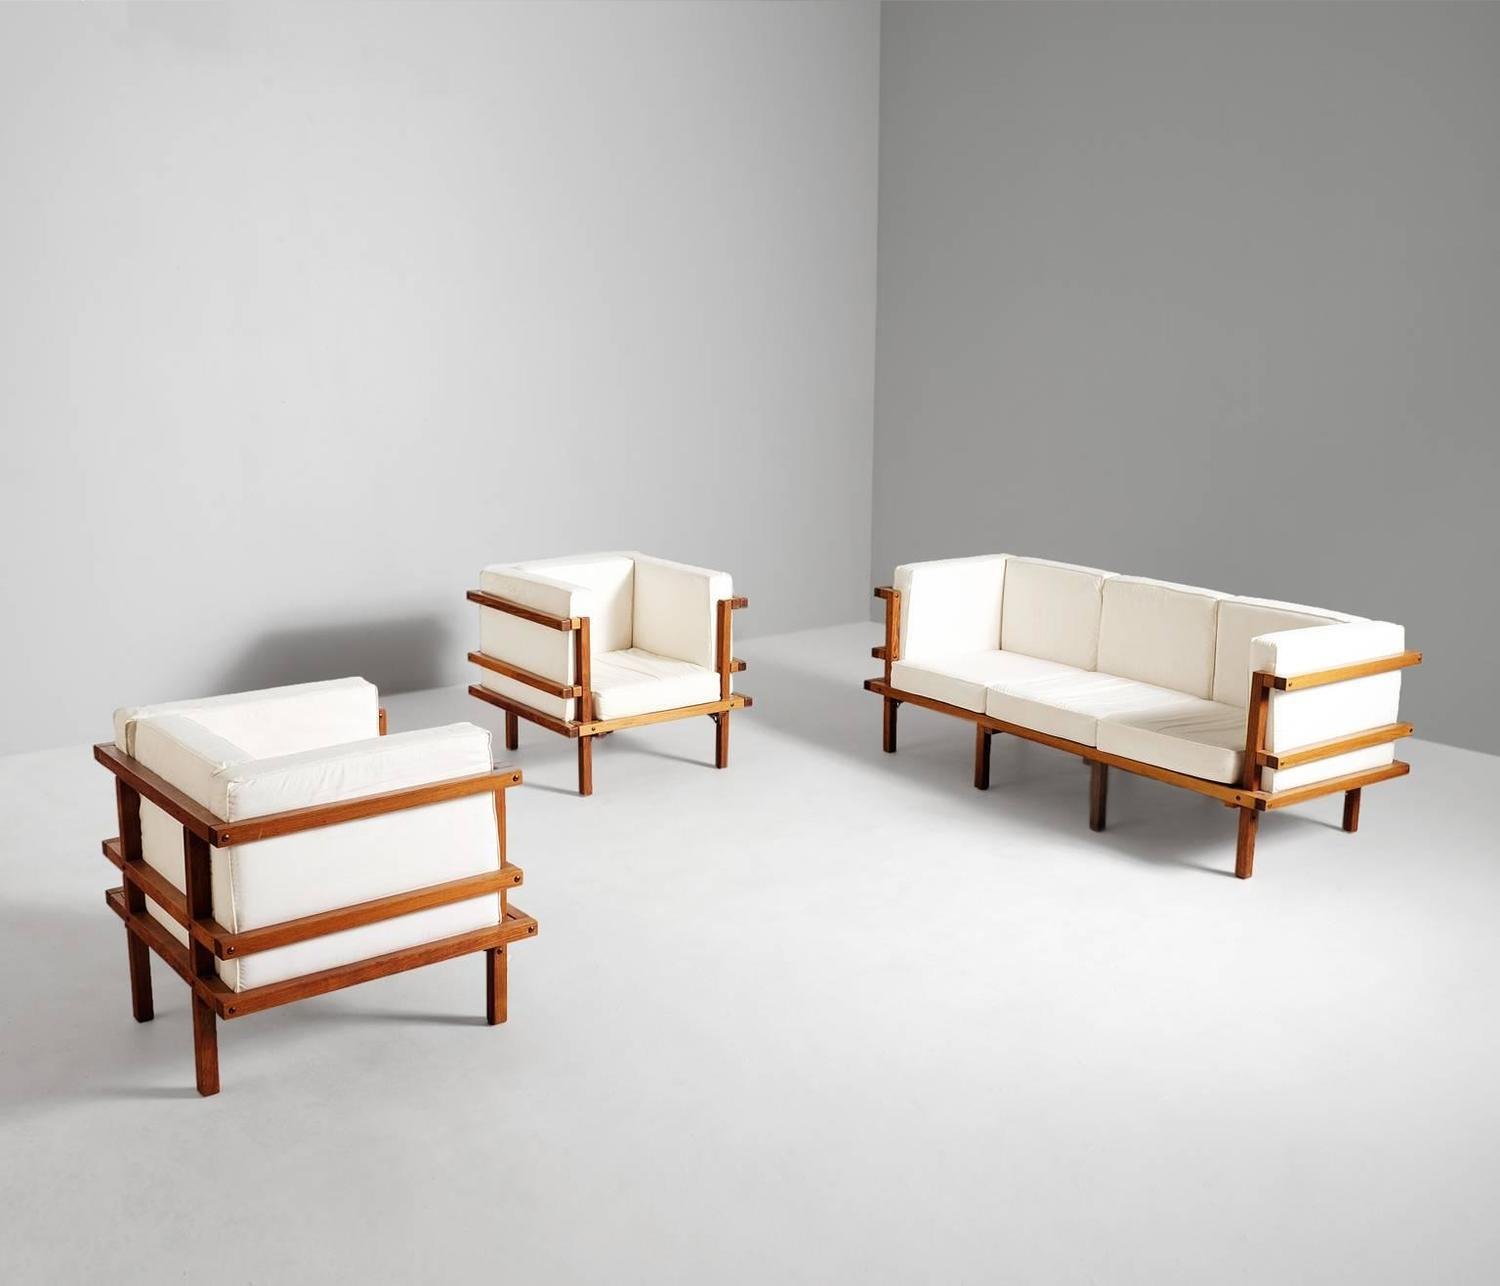 Living Room Sets For Sale Cheap: Luxurious Cubistic Living Room Set For Sale At 1stdibs